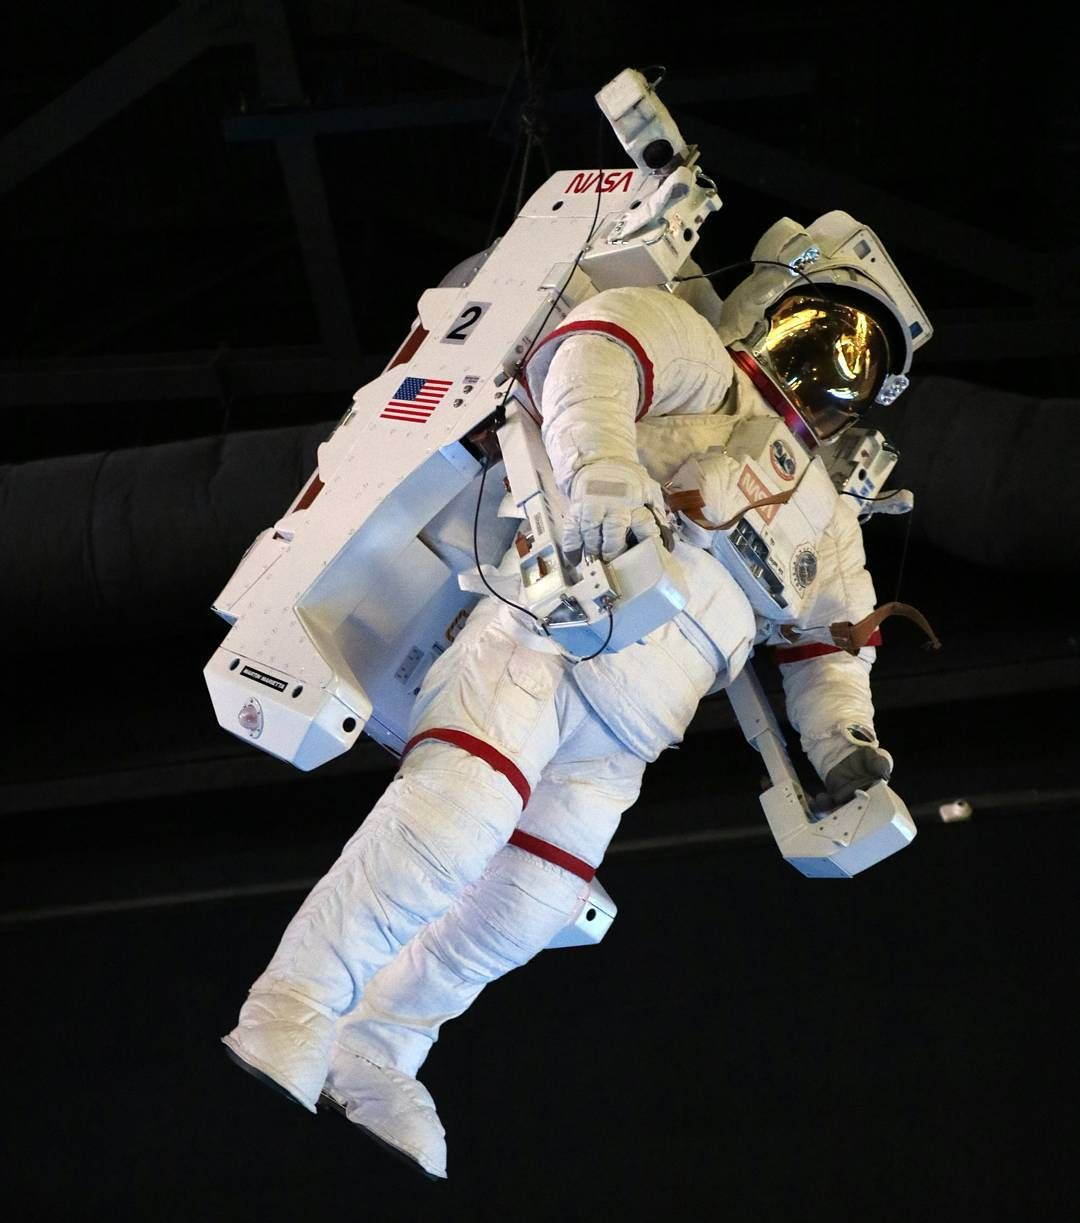 Feel free ... and become a Spaceman!